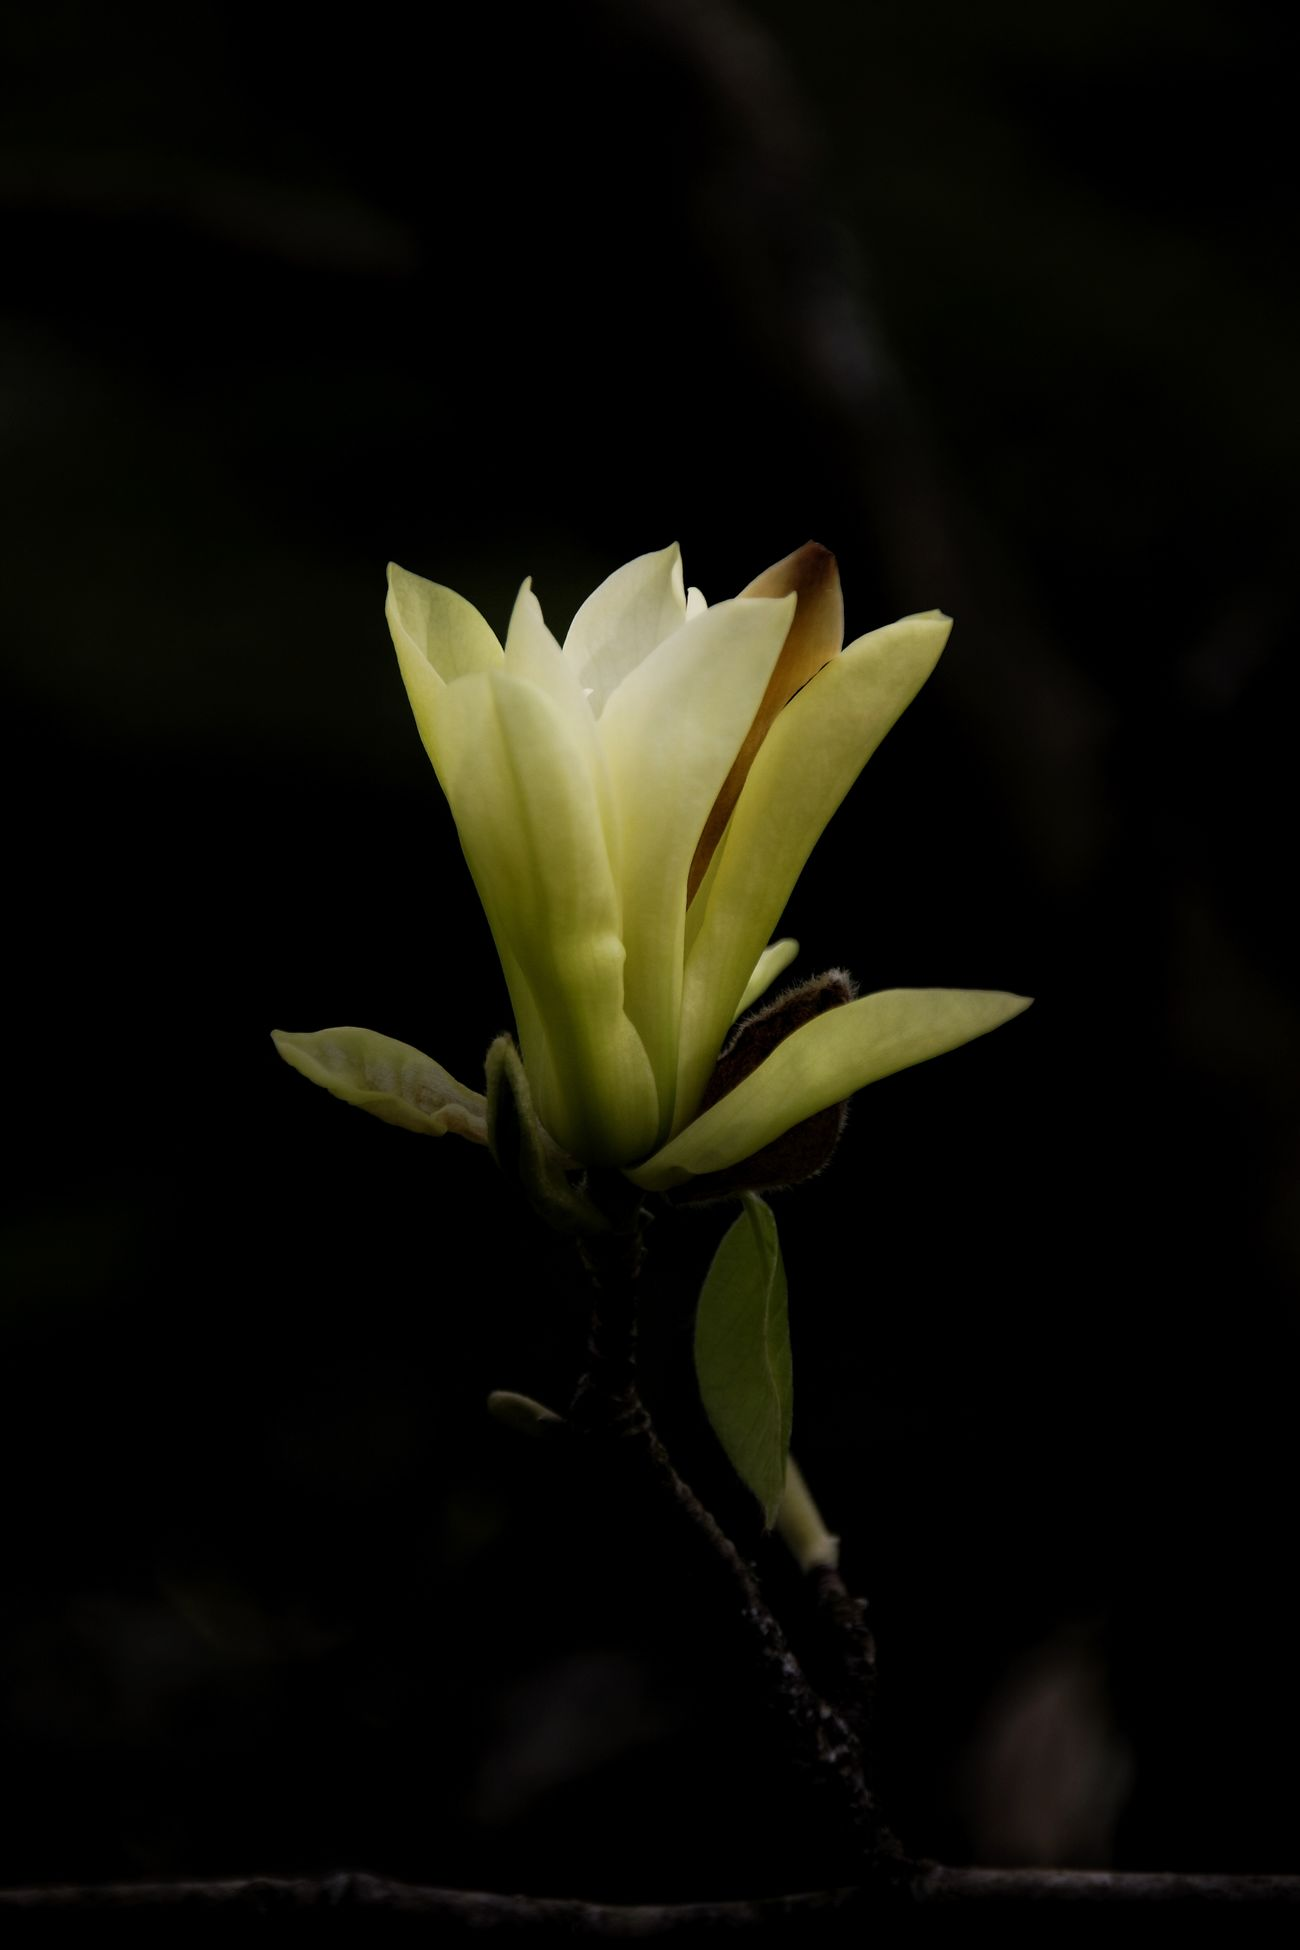 Yellow magnolia EyeEm Best Shots Eye4photography  EyeEm Nature Lover We Are Photography, We Are EyeEm